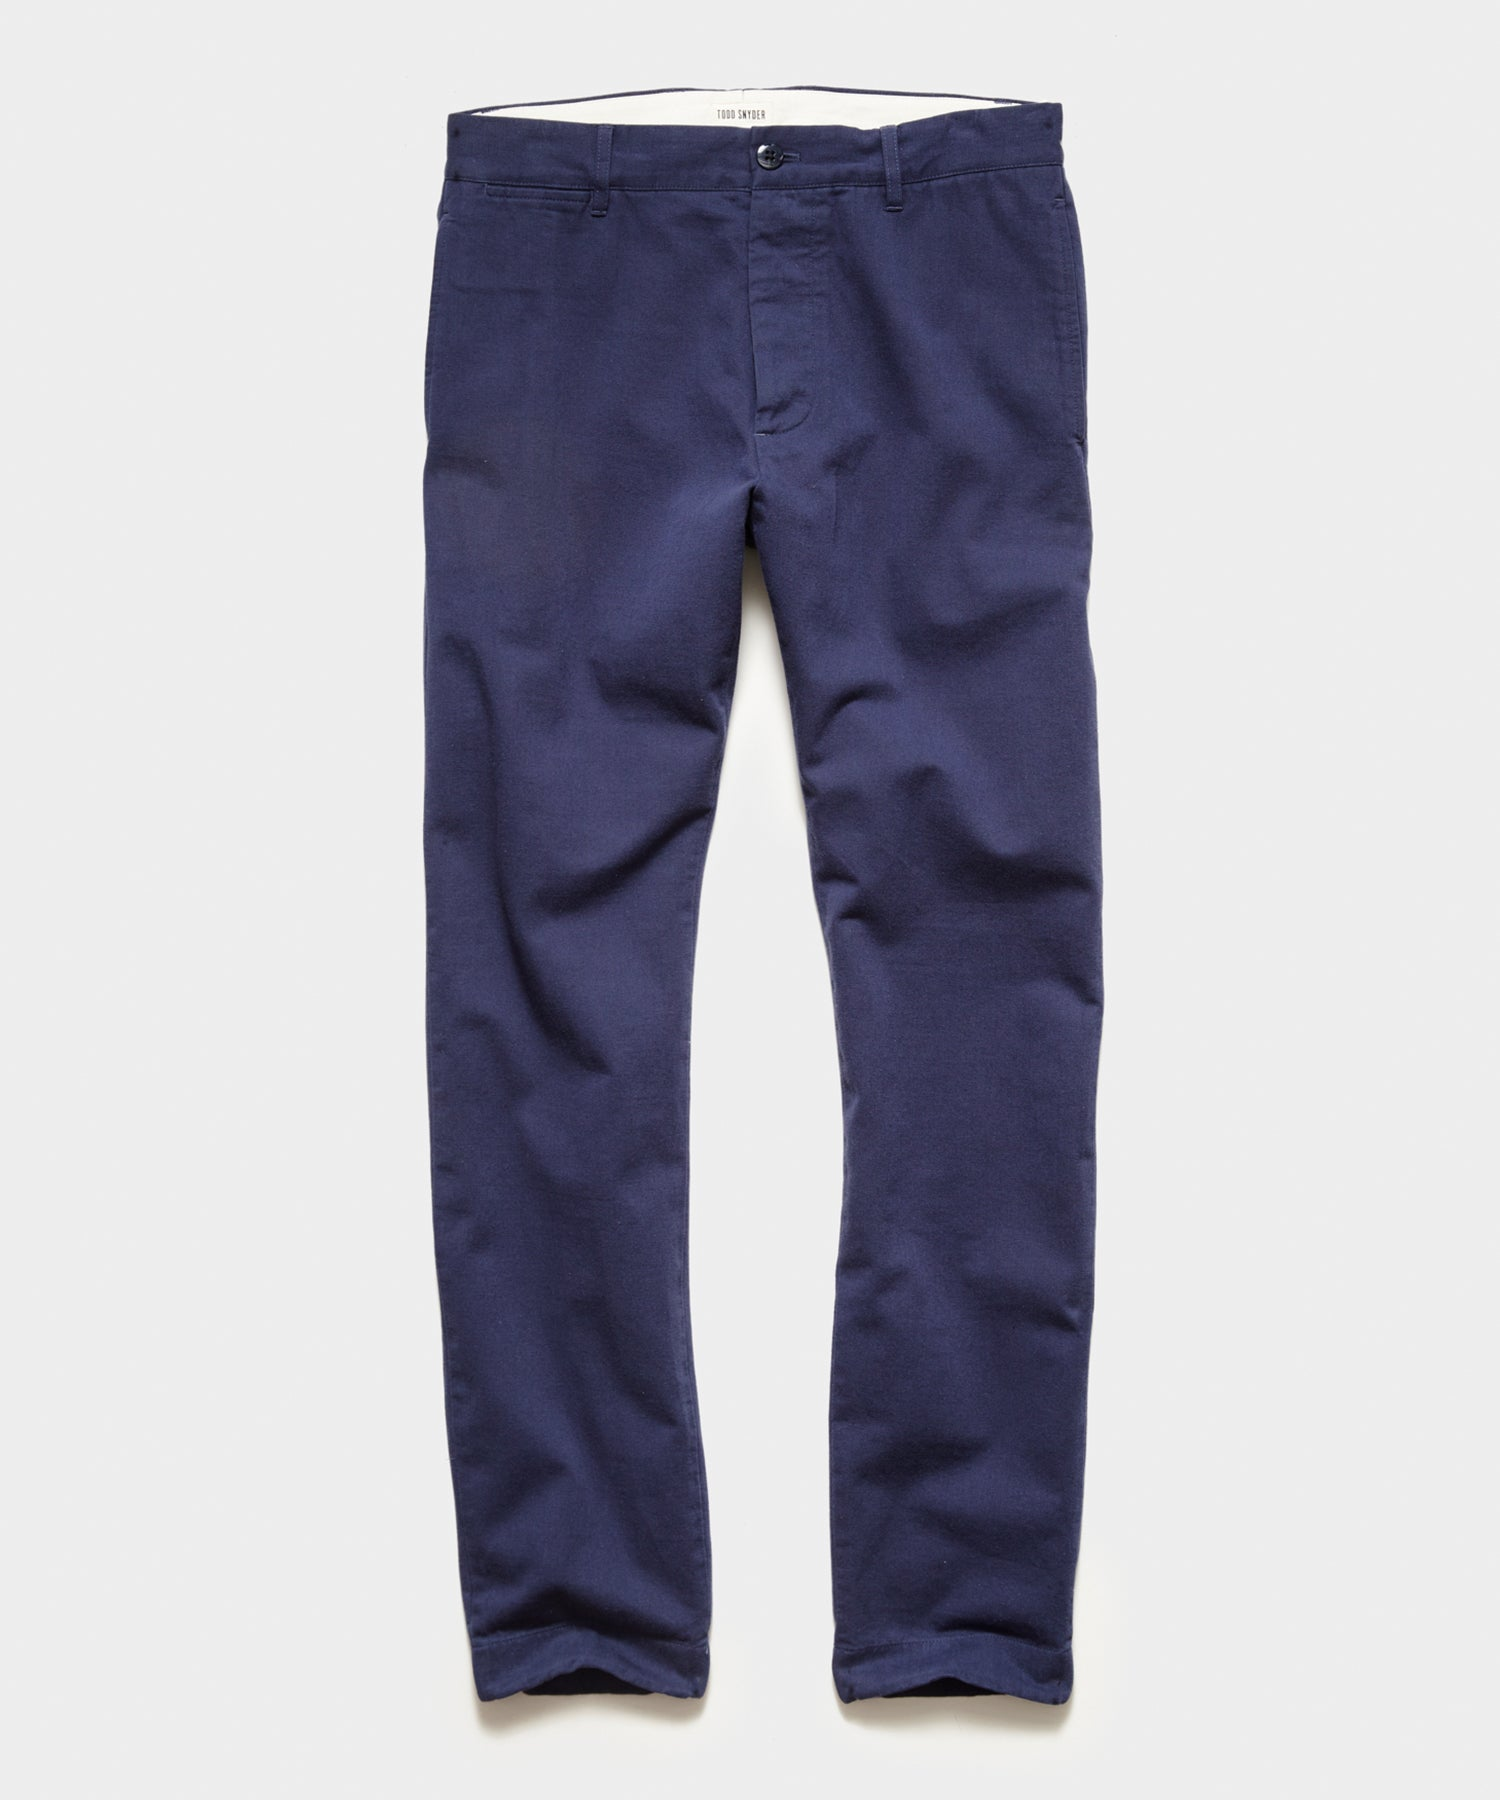 Japanese Selvedge Chino in Navy